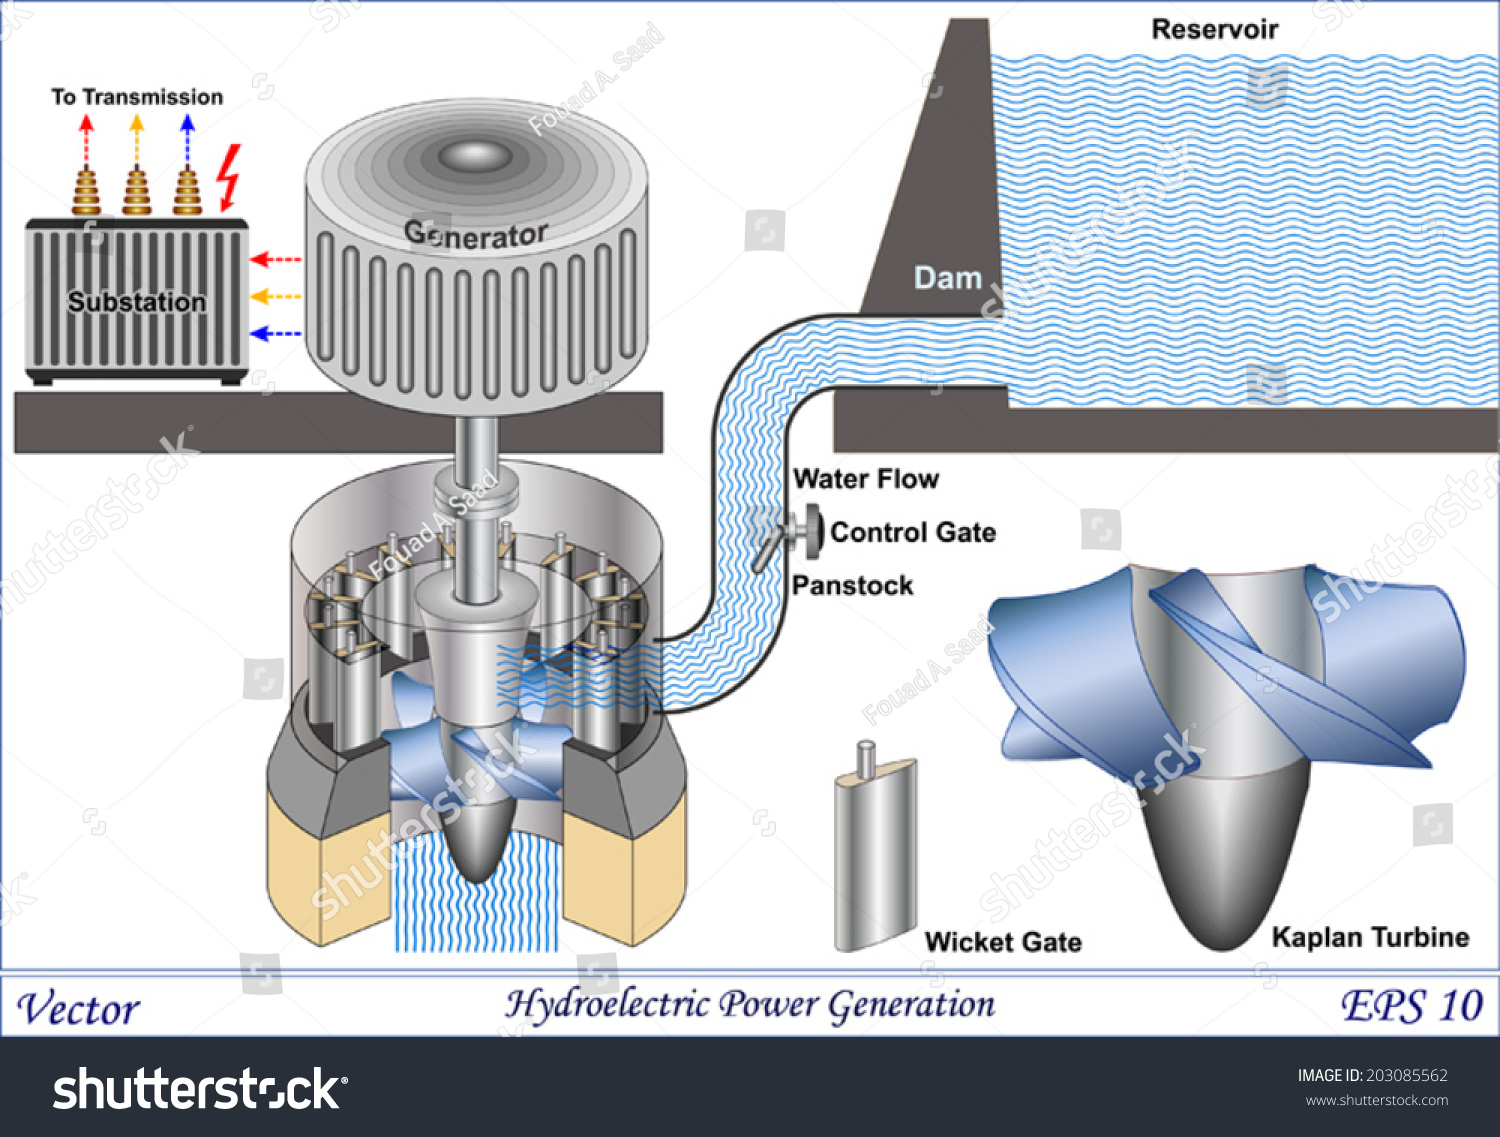 Hydroelectric Power Generation. schematic view of a hydro power plant.  Water flowing in high